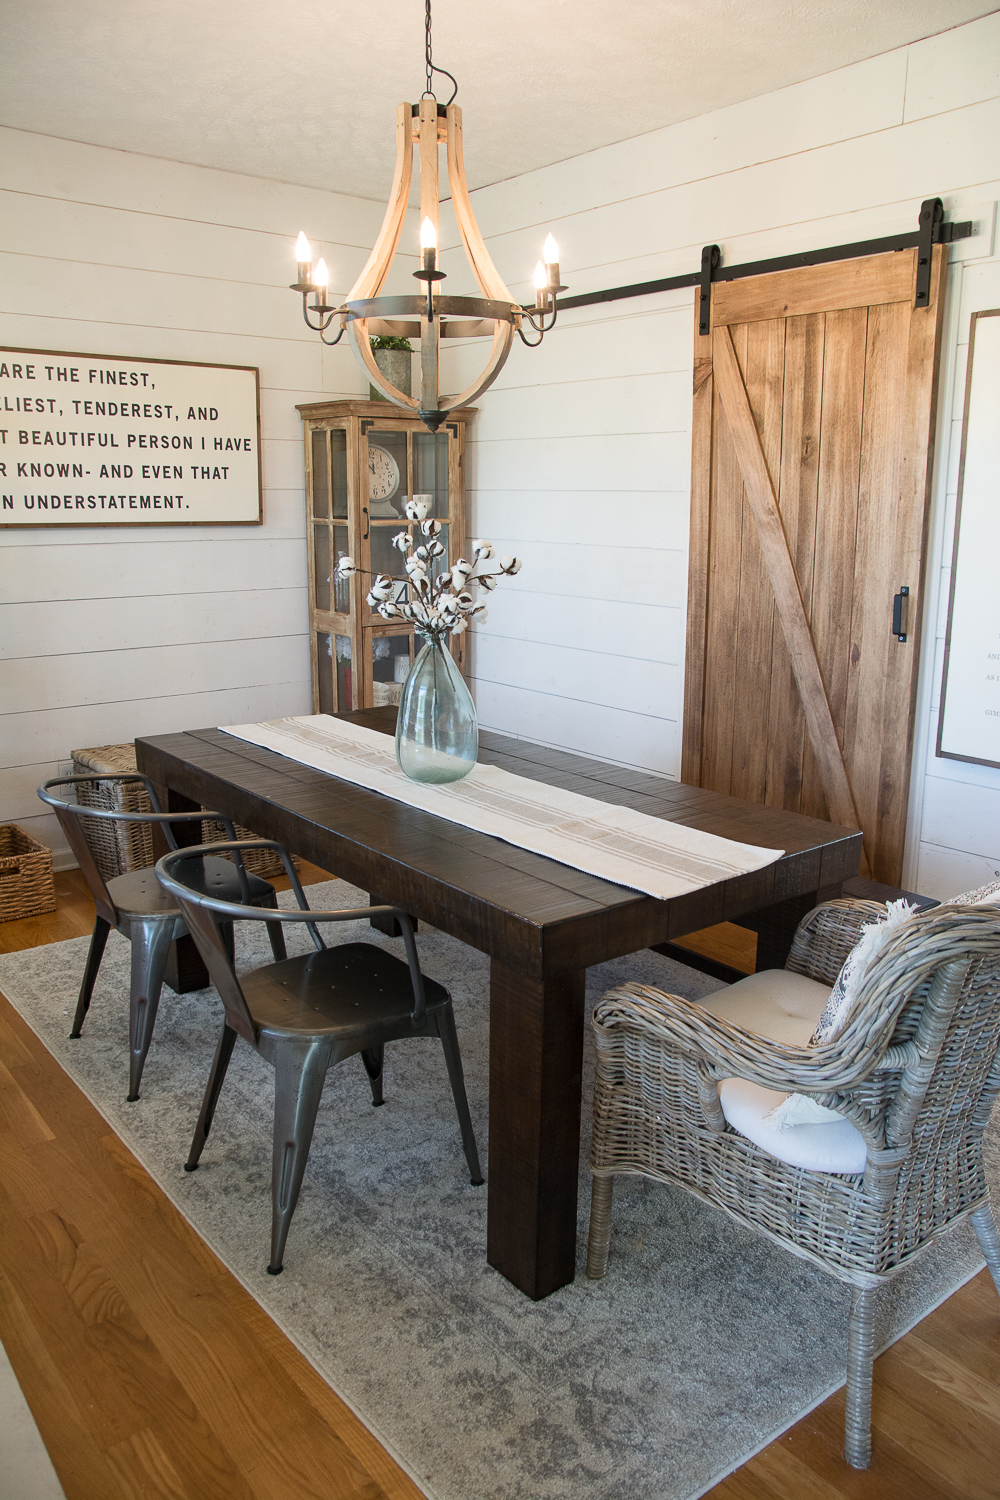 How to create an easy and affordable farmhouse style dining room!